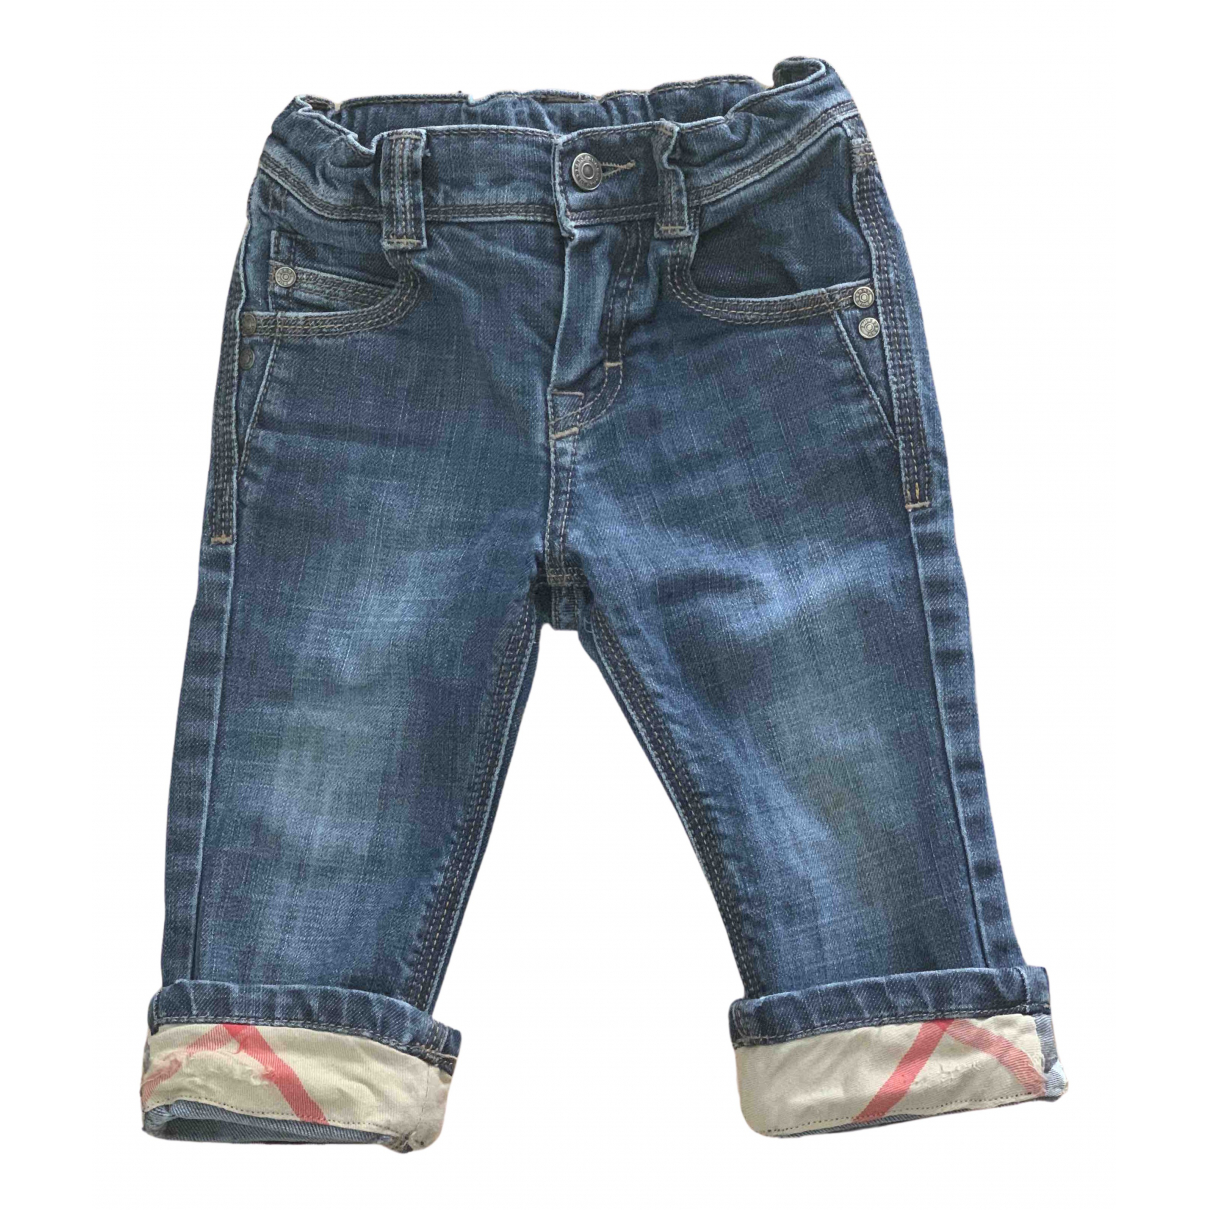 Burberry N Denim - Jeans Trousers for Kids 18 months - up to 81cm FR